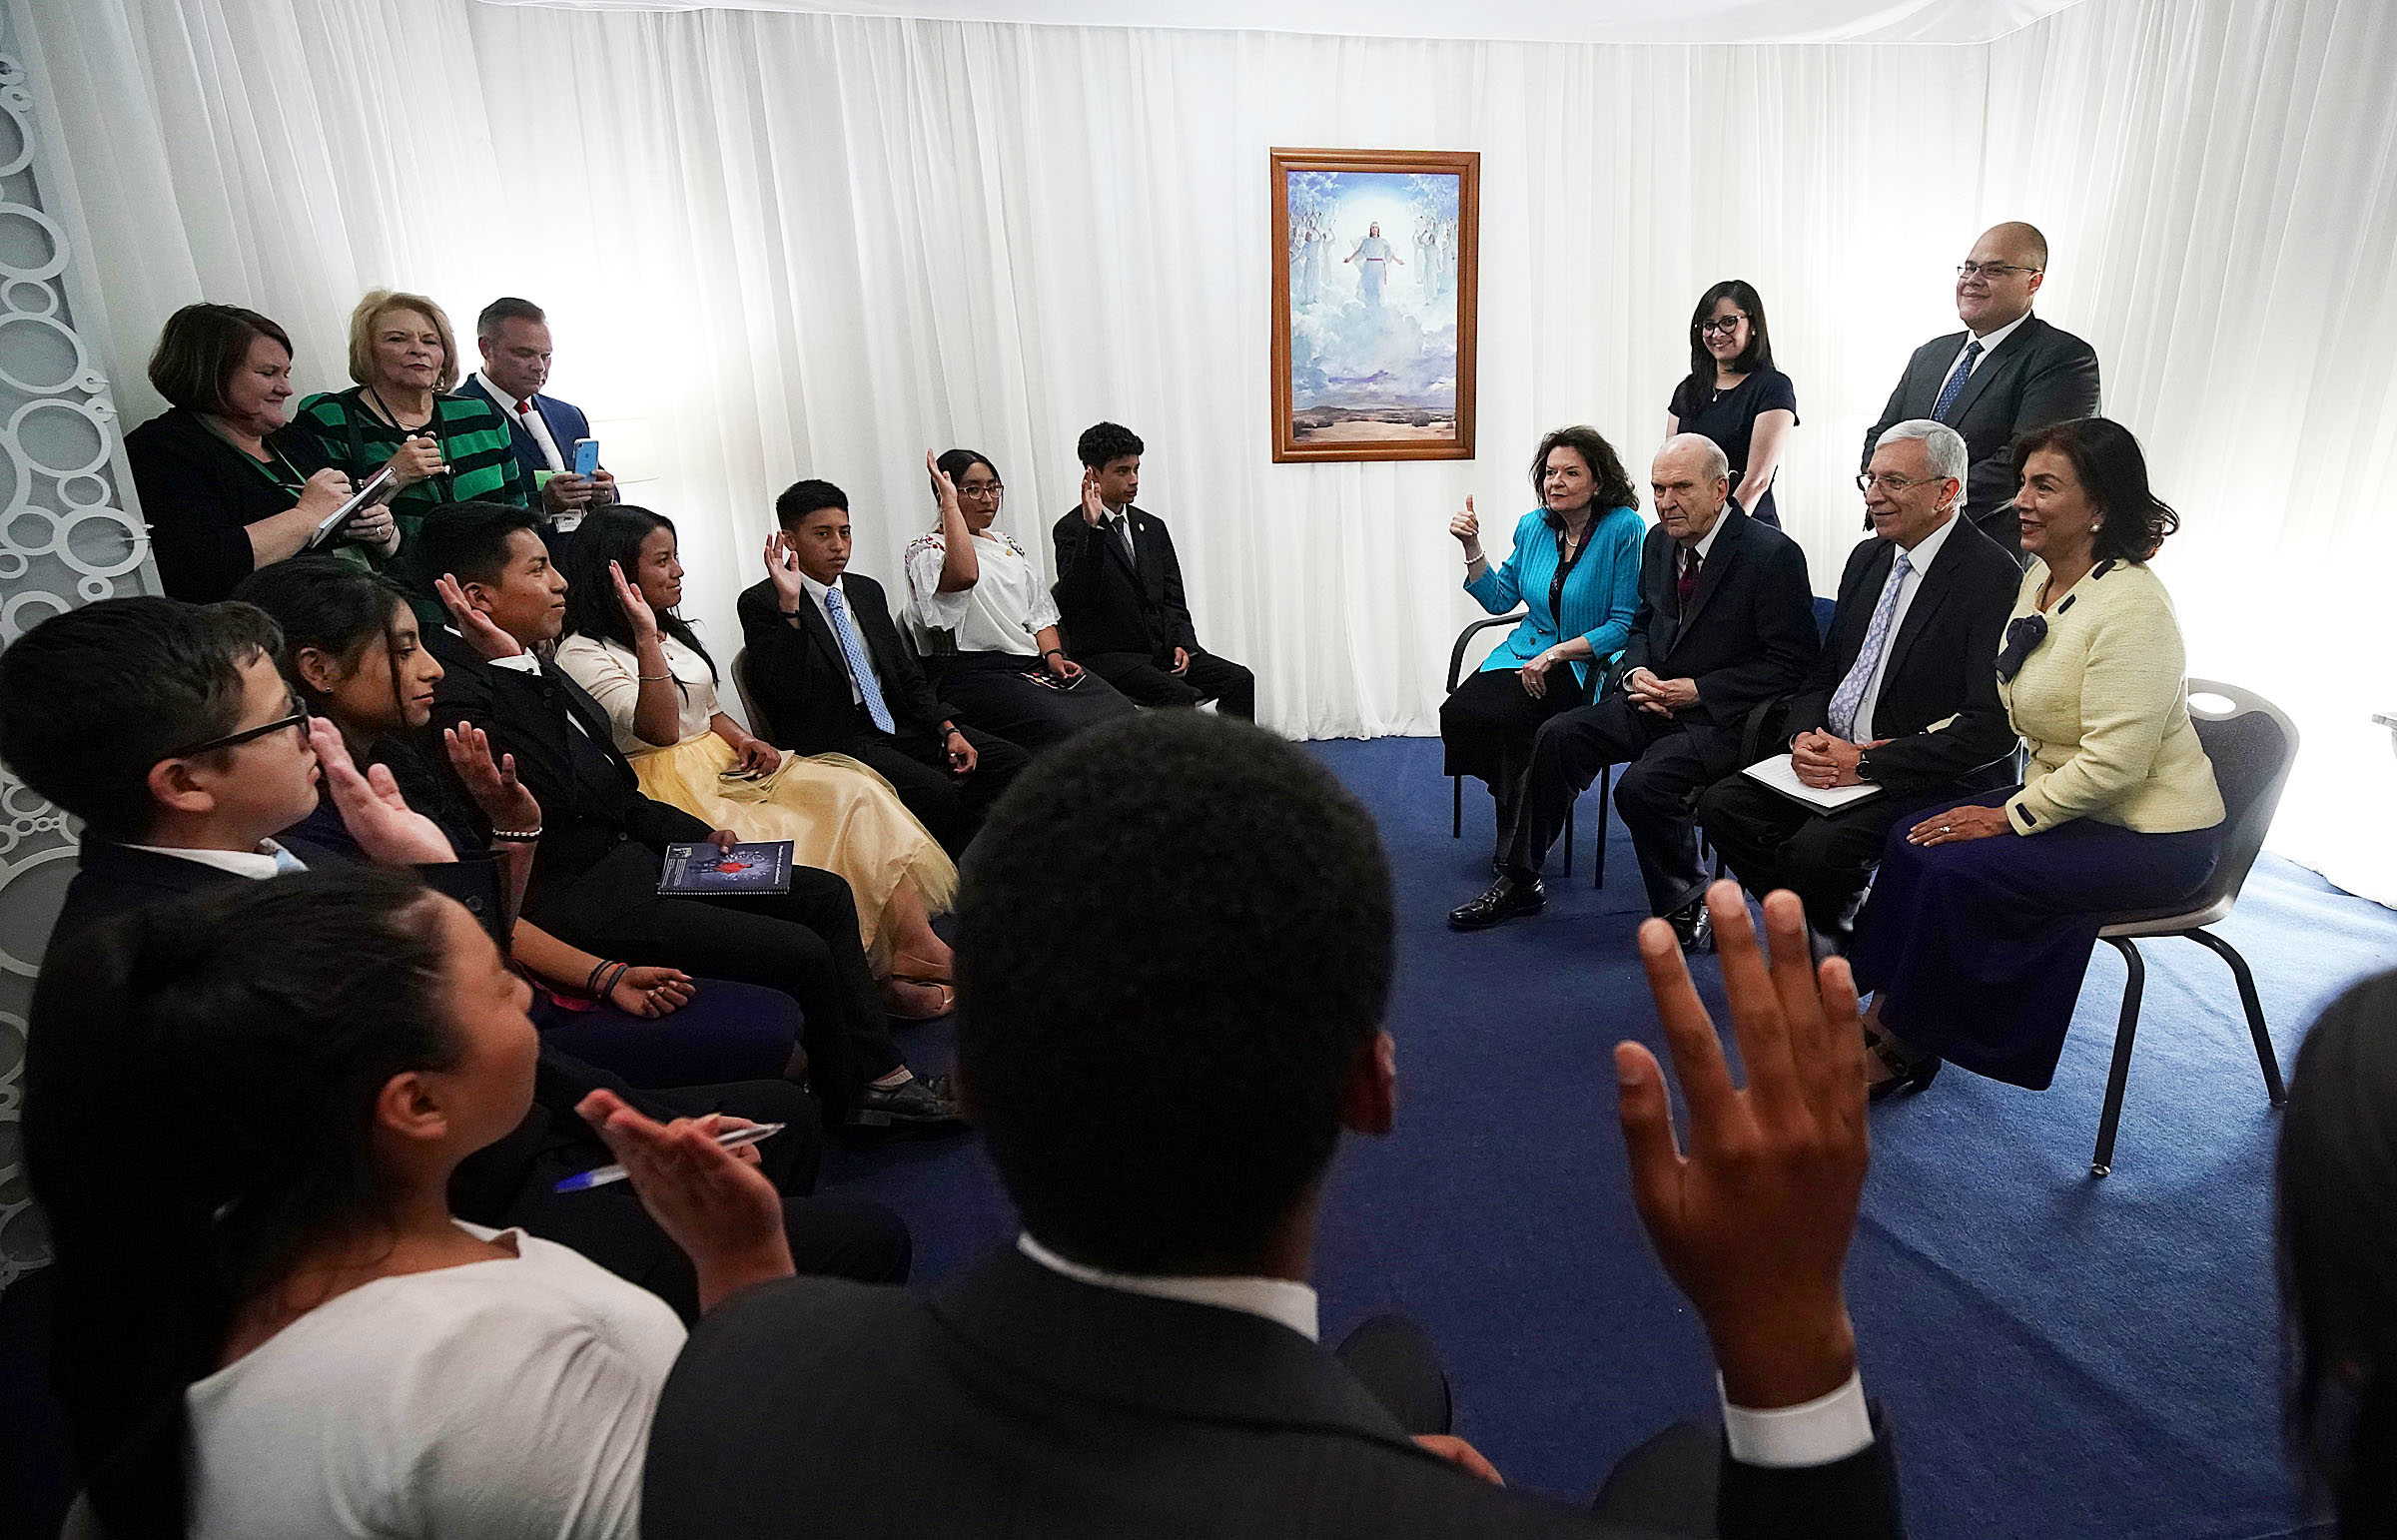 President Russell M. Nelson of The Church of Jesus Christ of Latter-day Saints and his wife, Sister Wendy Nelson, left, along with Elder Enrique R. Falabella, General Authority Seventy, and his wife, Sister Ruth Falabella, talk with youth before a Latin America Ministry Tour devotional in Quito, Ecuador, on Monday, Aug. 26, 2019. In this photo, Sister Nelson asks if the youth know someone who is not a member of The Church of Jesus Christ of Latter-day Saints.